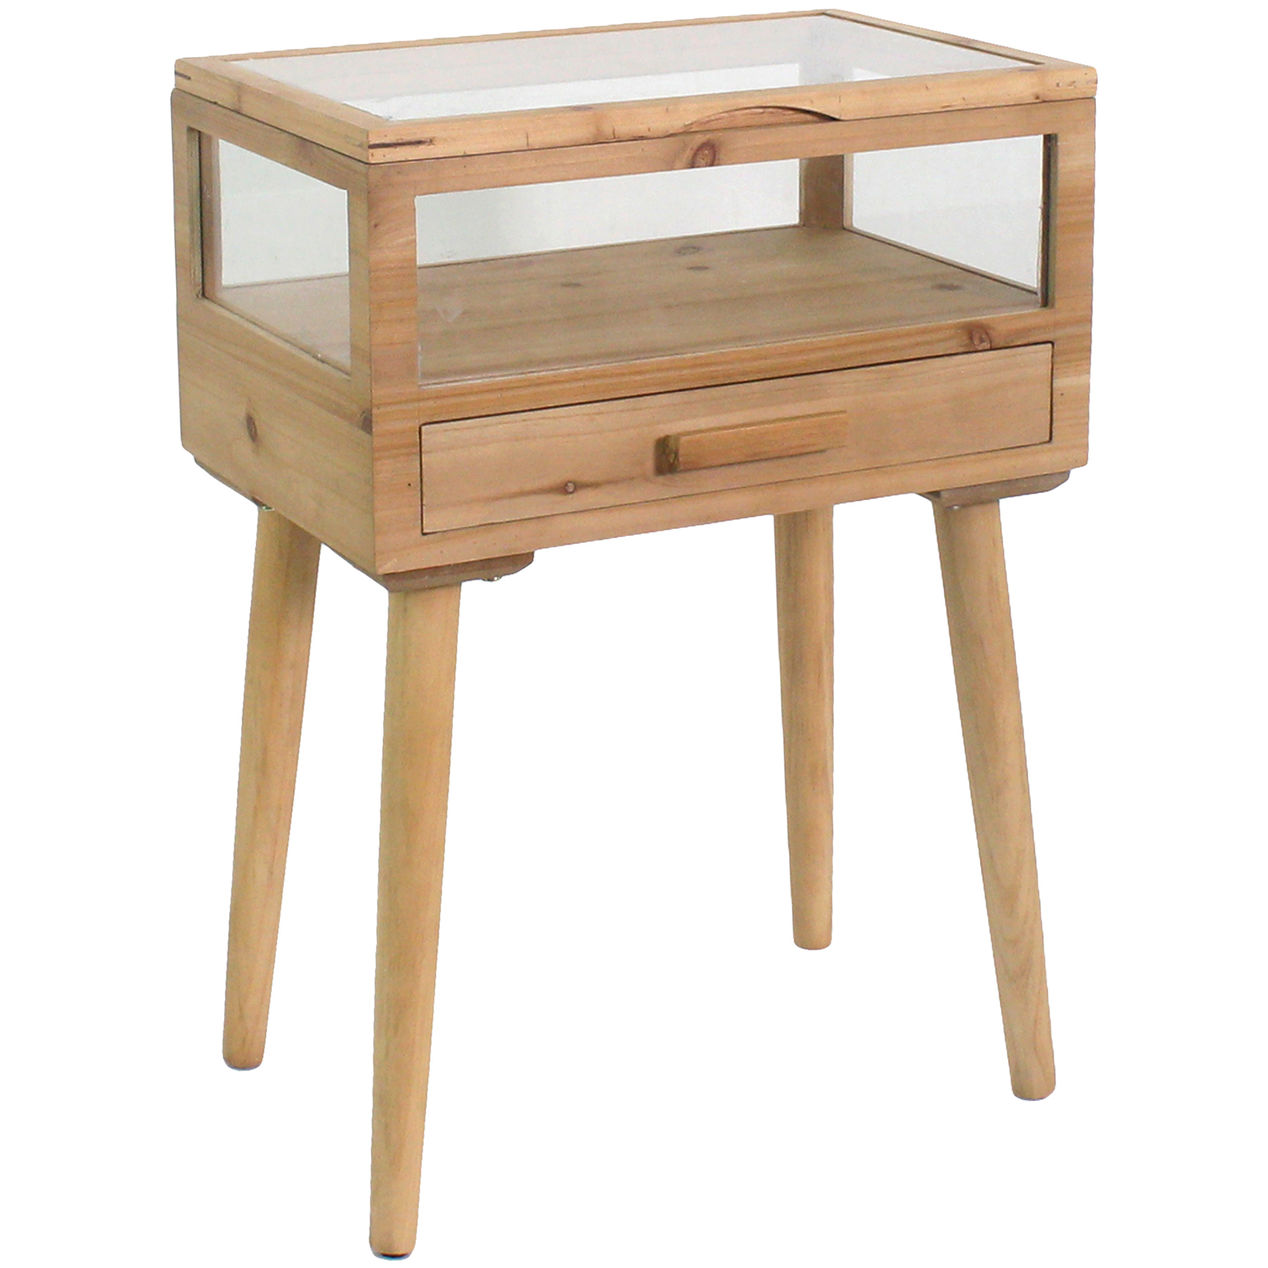 display side table home patio umbrella accent xmas tablecloth end tables gold entryway blue nightstand woven furniture lift top coffee square clear outdoor battery lamps all wood